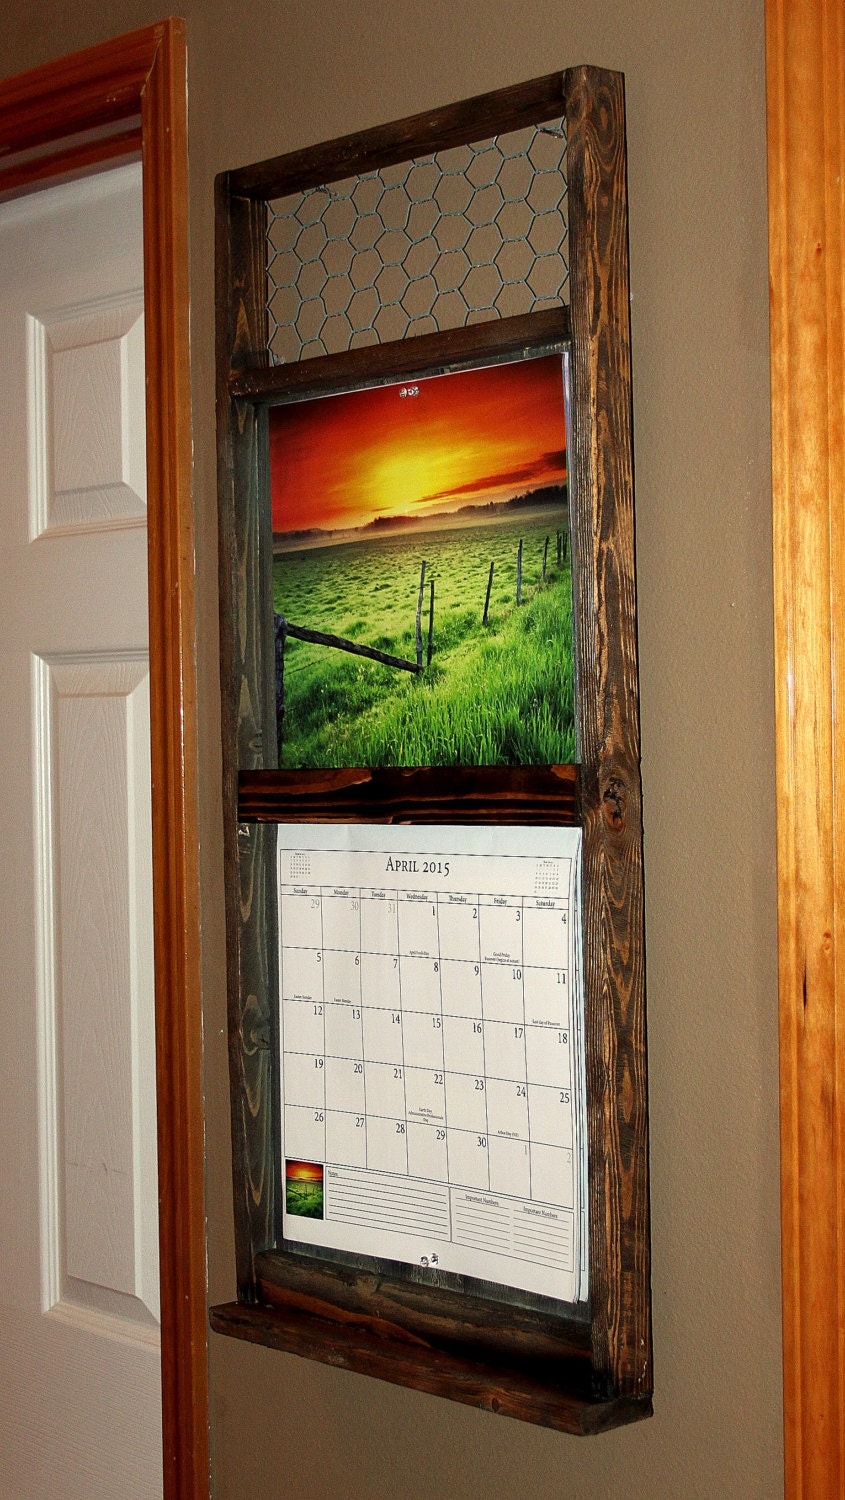 Rustic Reclaimed Calendar Holder